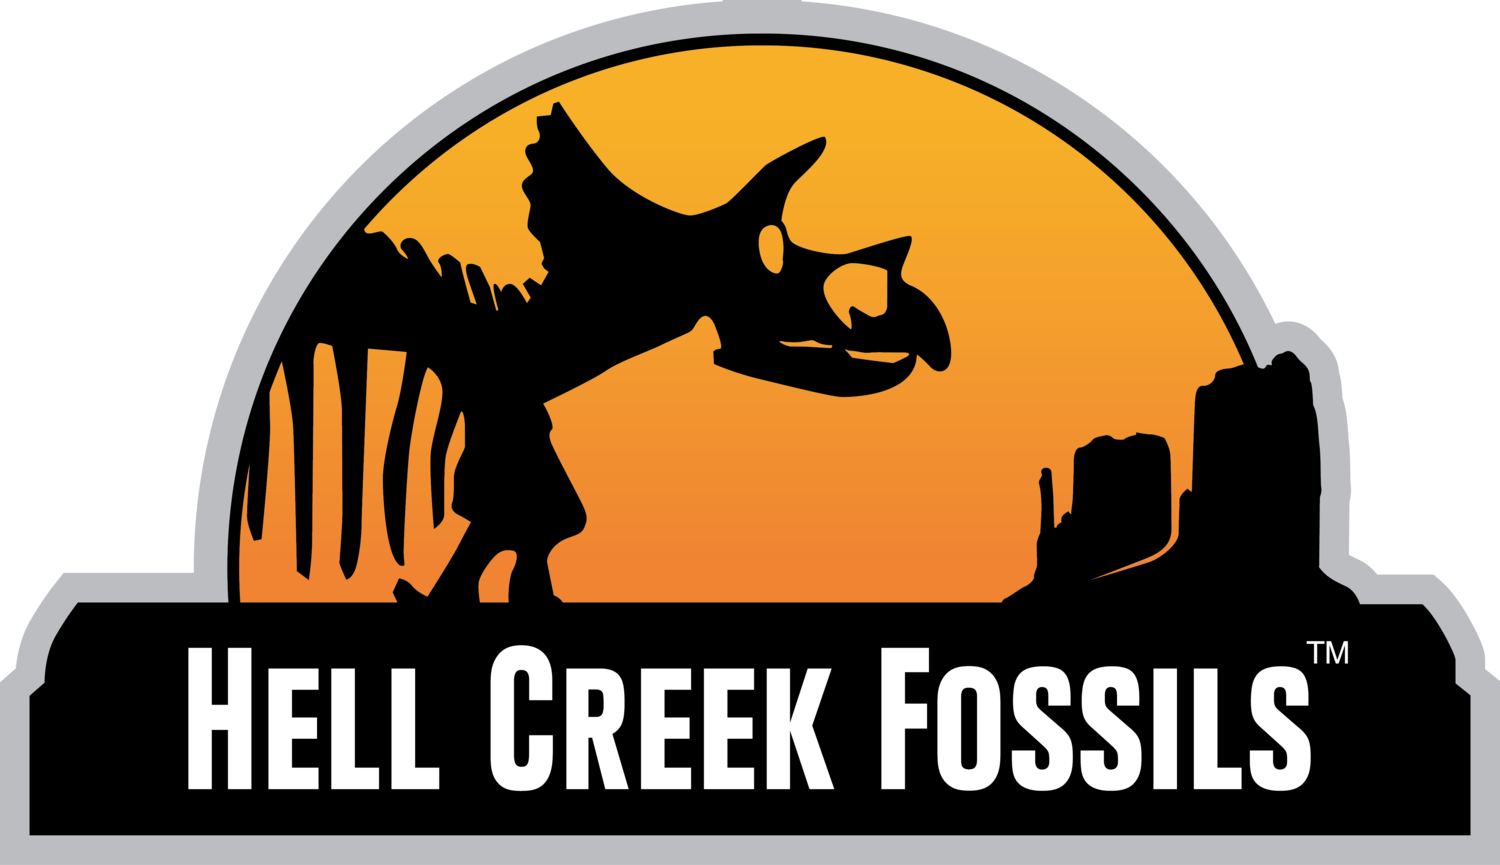 Fossil clipart plant fossil. Fossils hell creek